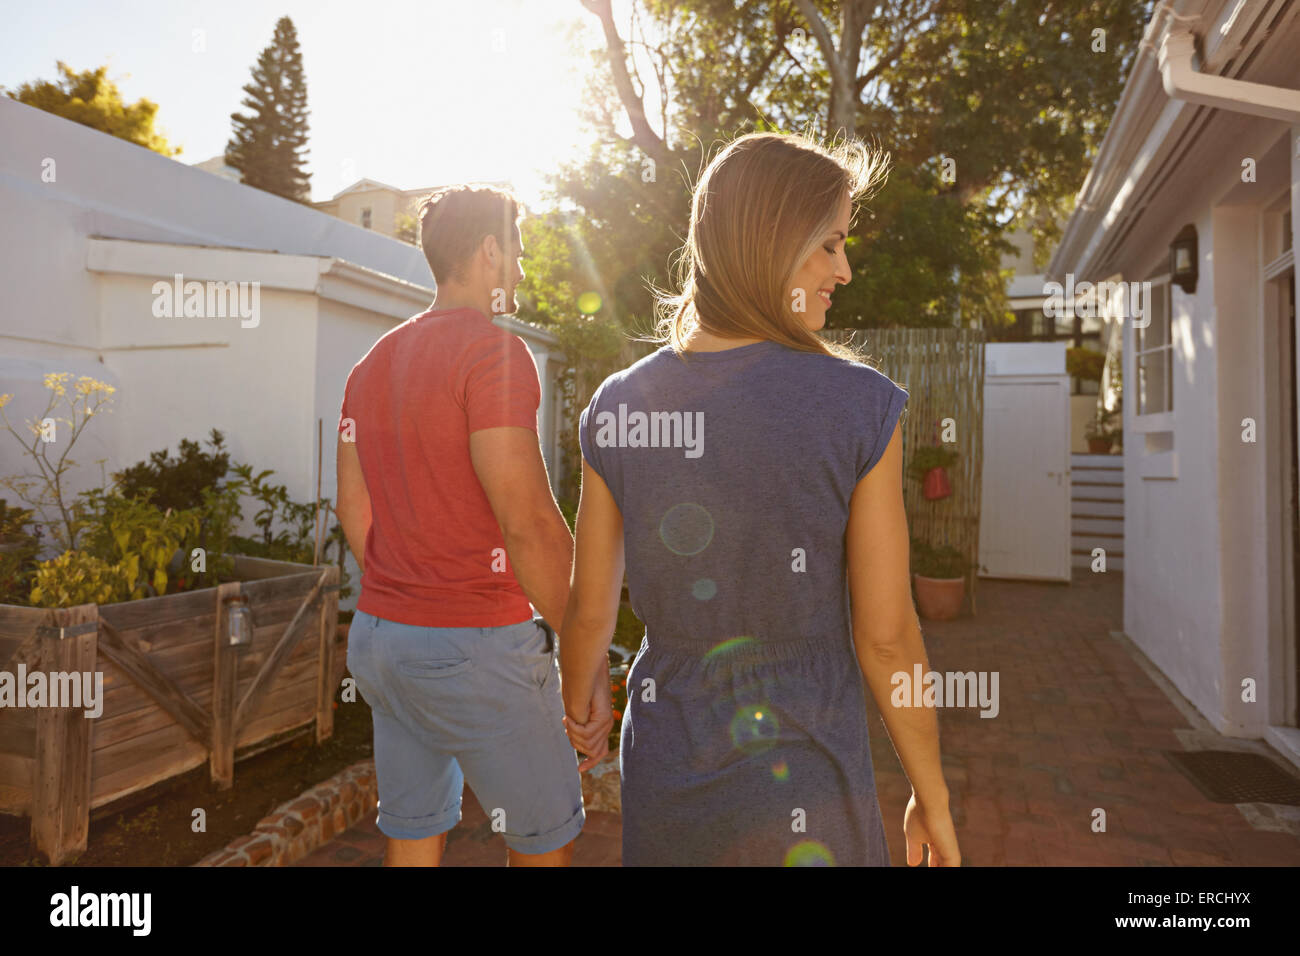 Rear view of young couple walking towards their house. Couple in backyard taking walk on a bright sunny day. - Stock Image